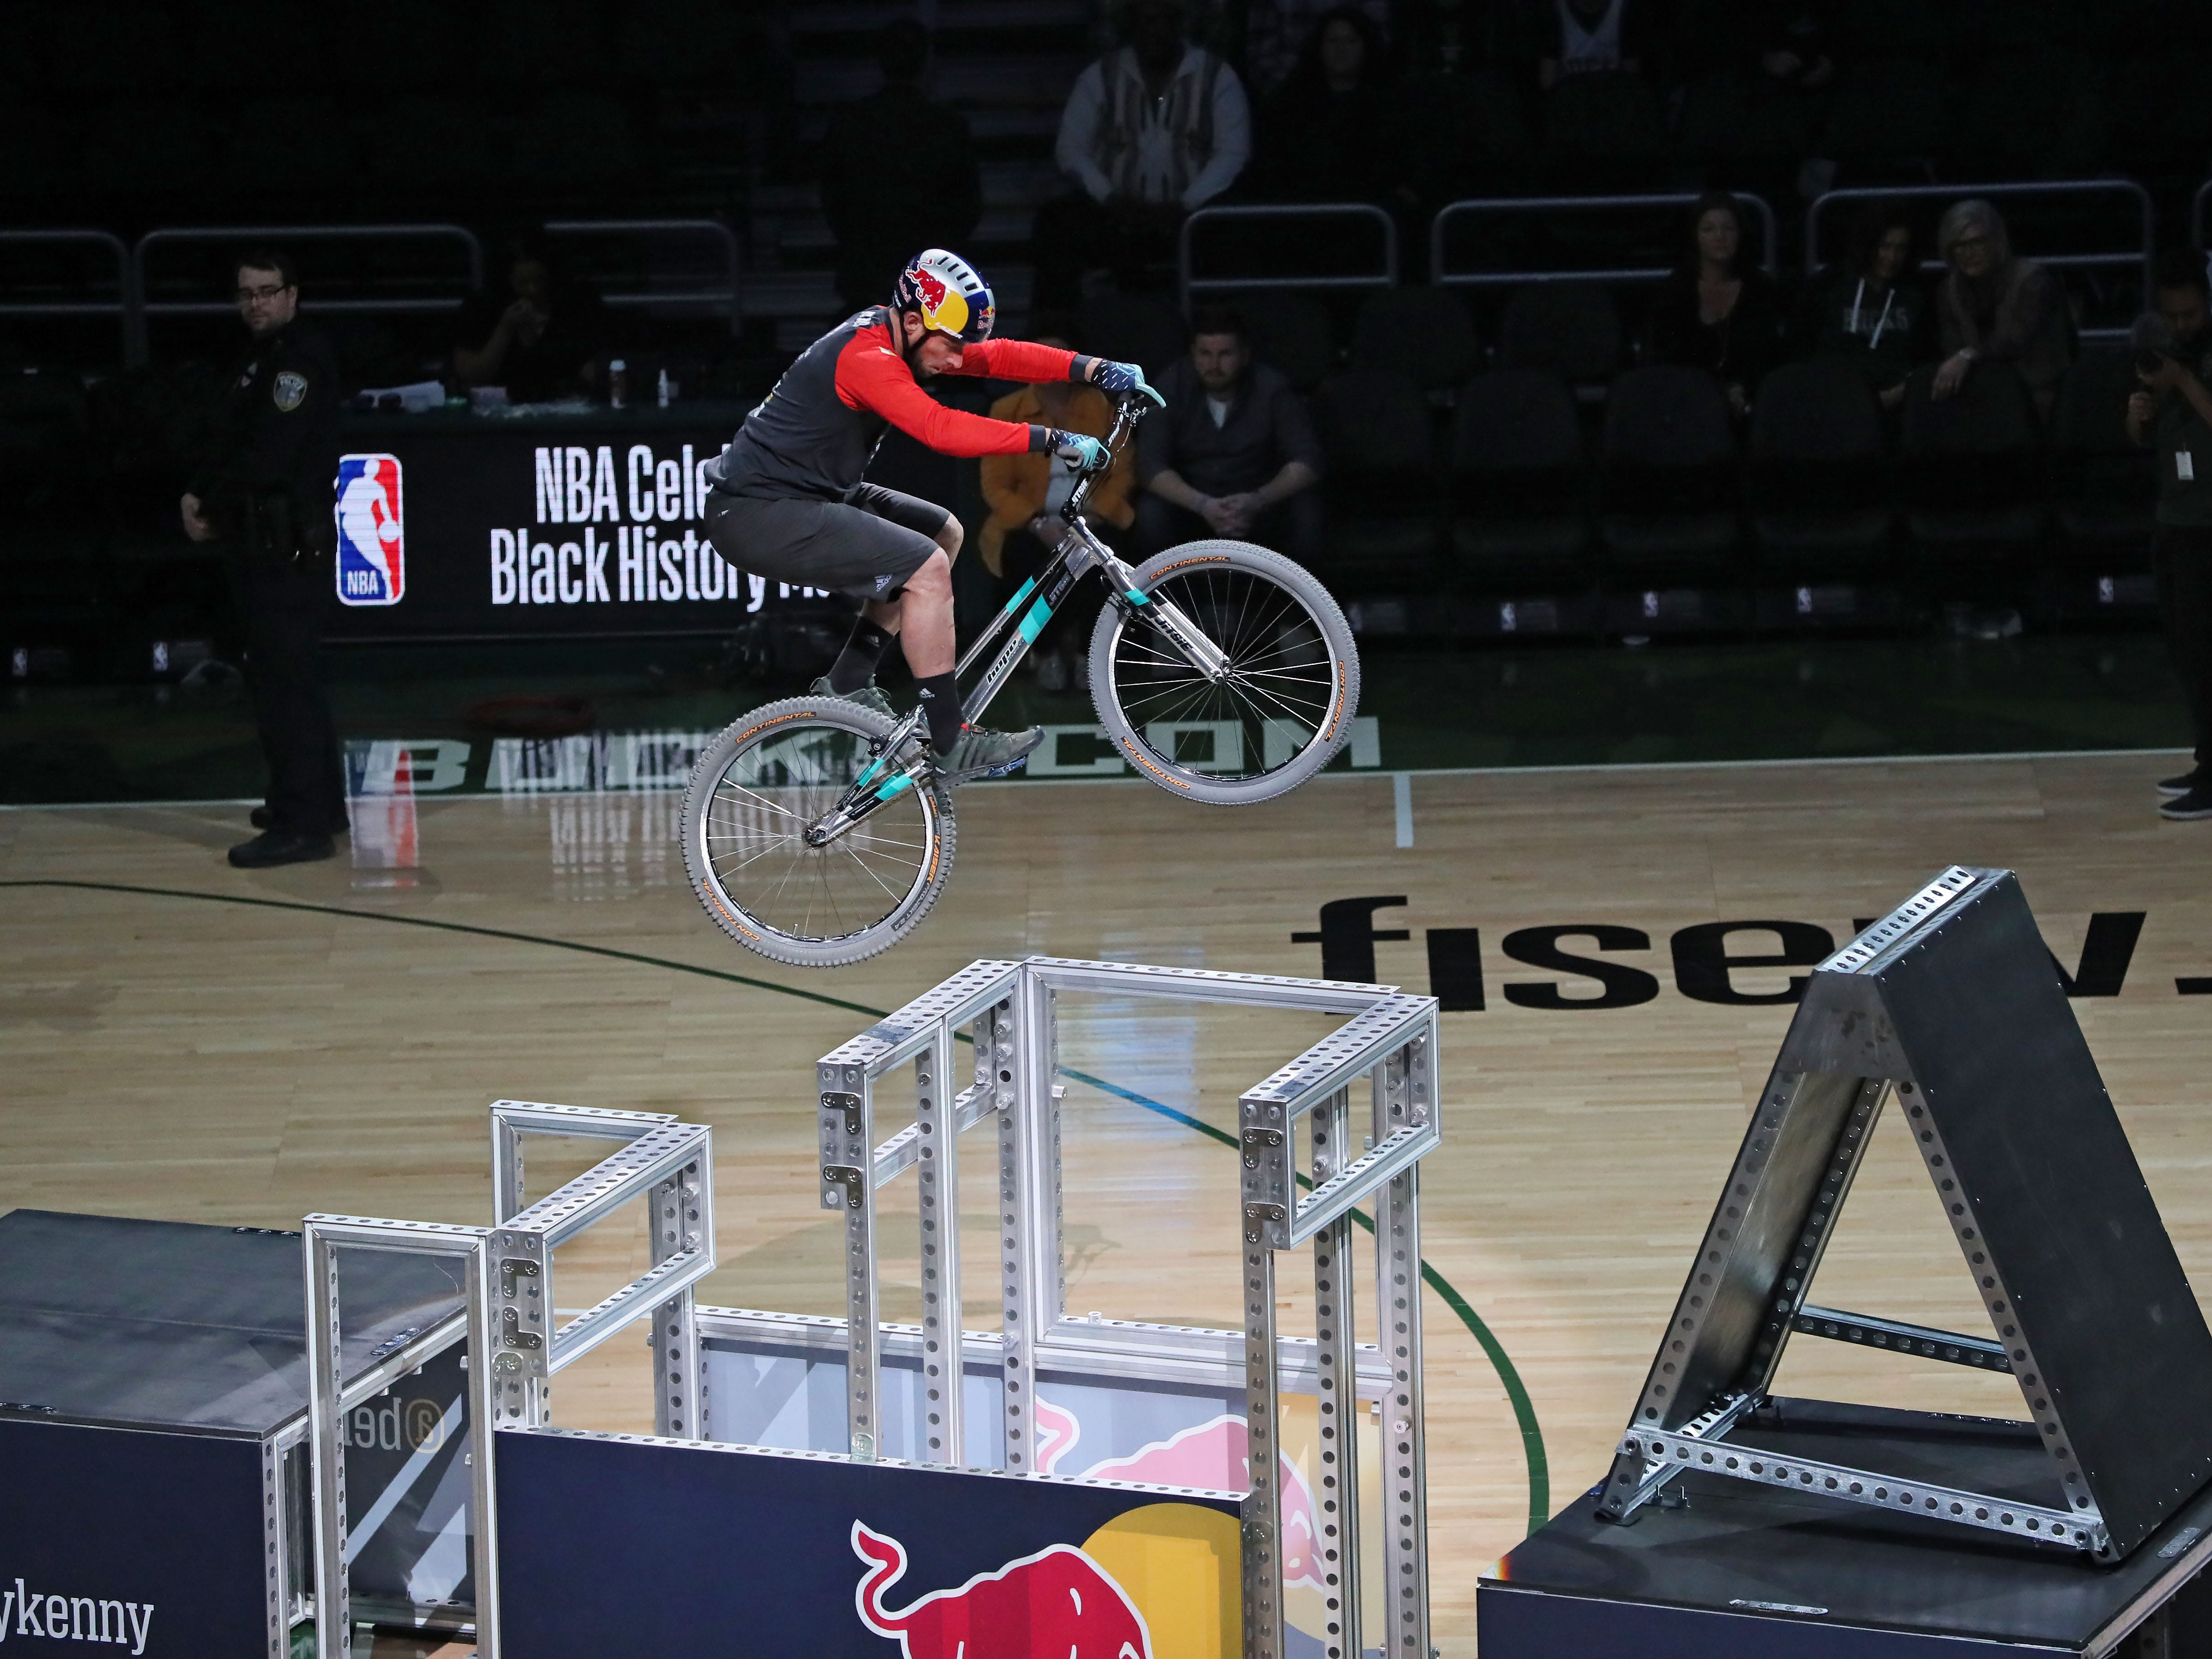 Kenny Belaey of Belgium, a champion mountain bike trials rider, hops from obstacle to obstacle using just his soft-tired bike, muscle and balance to make the leaps. Trials riding is all about moving over obstacles on your bike without your feet touching ground.  He performed during halftime on Feb. 6.